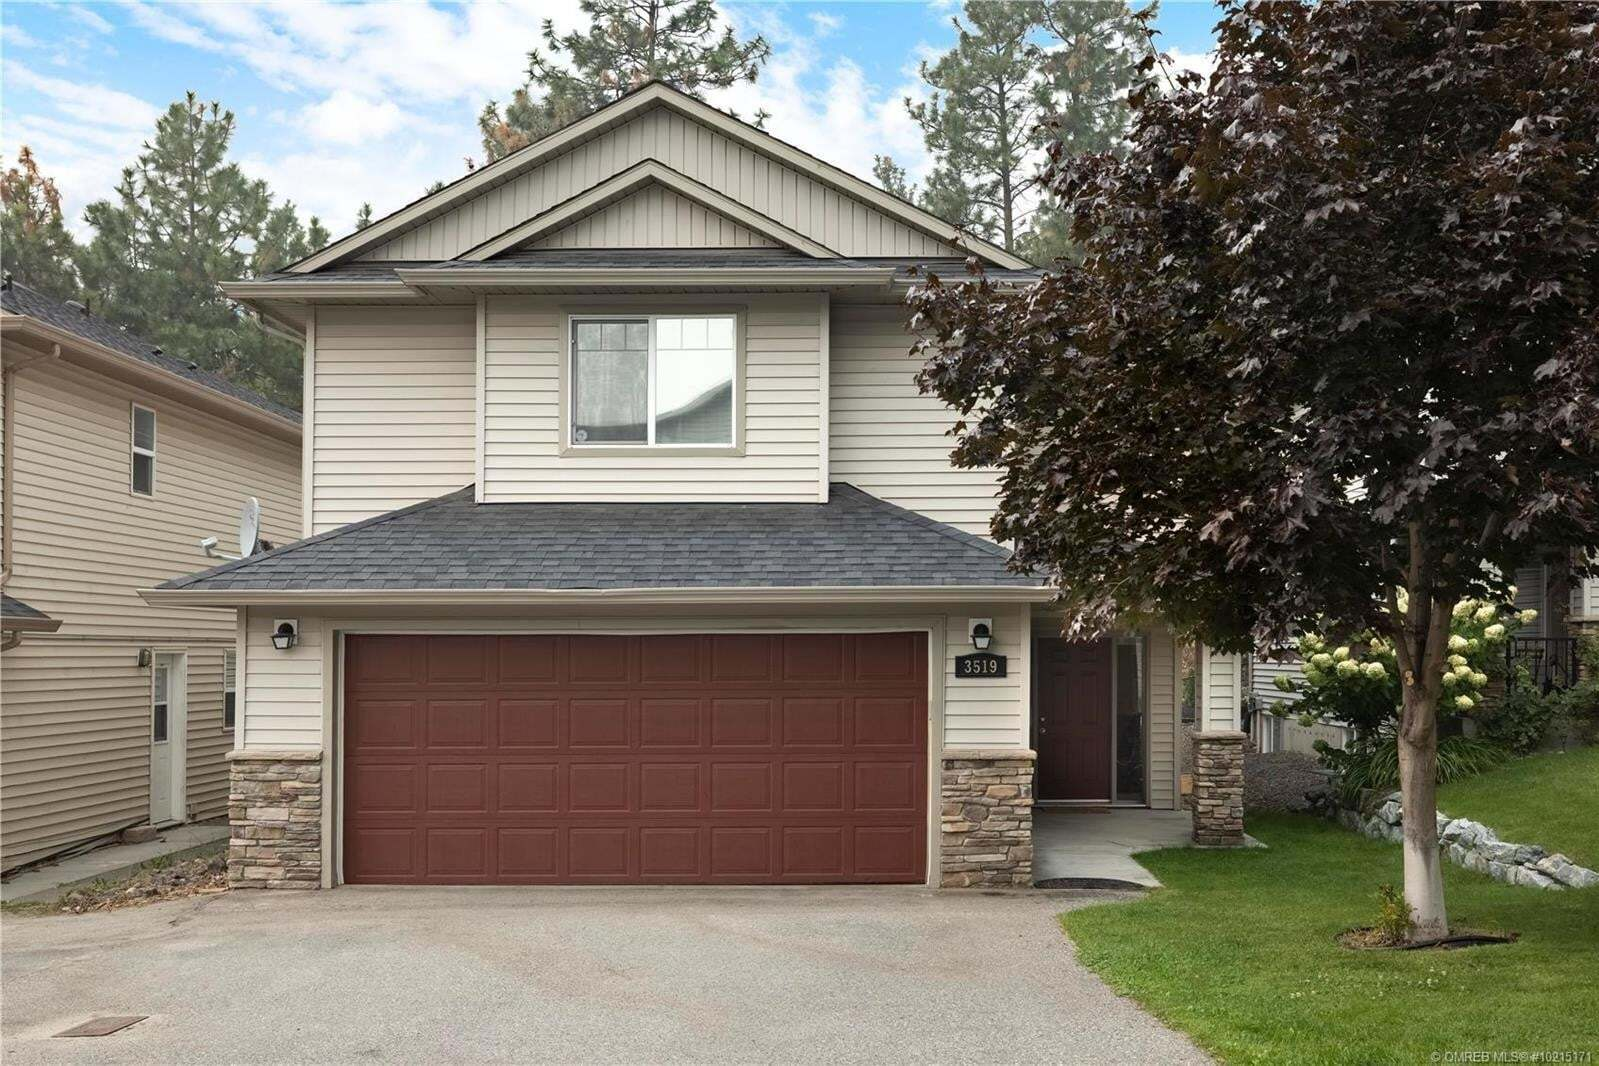 House for sale at 3519 Creekview Cres West Kelowna British Columbia - MLS: 10215171